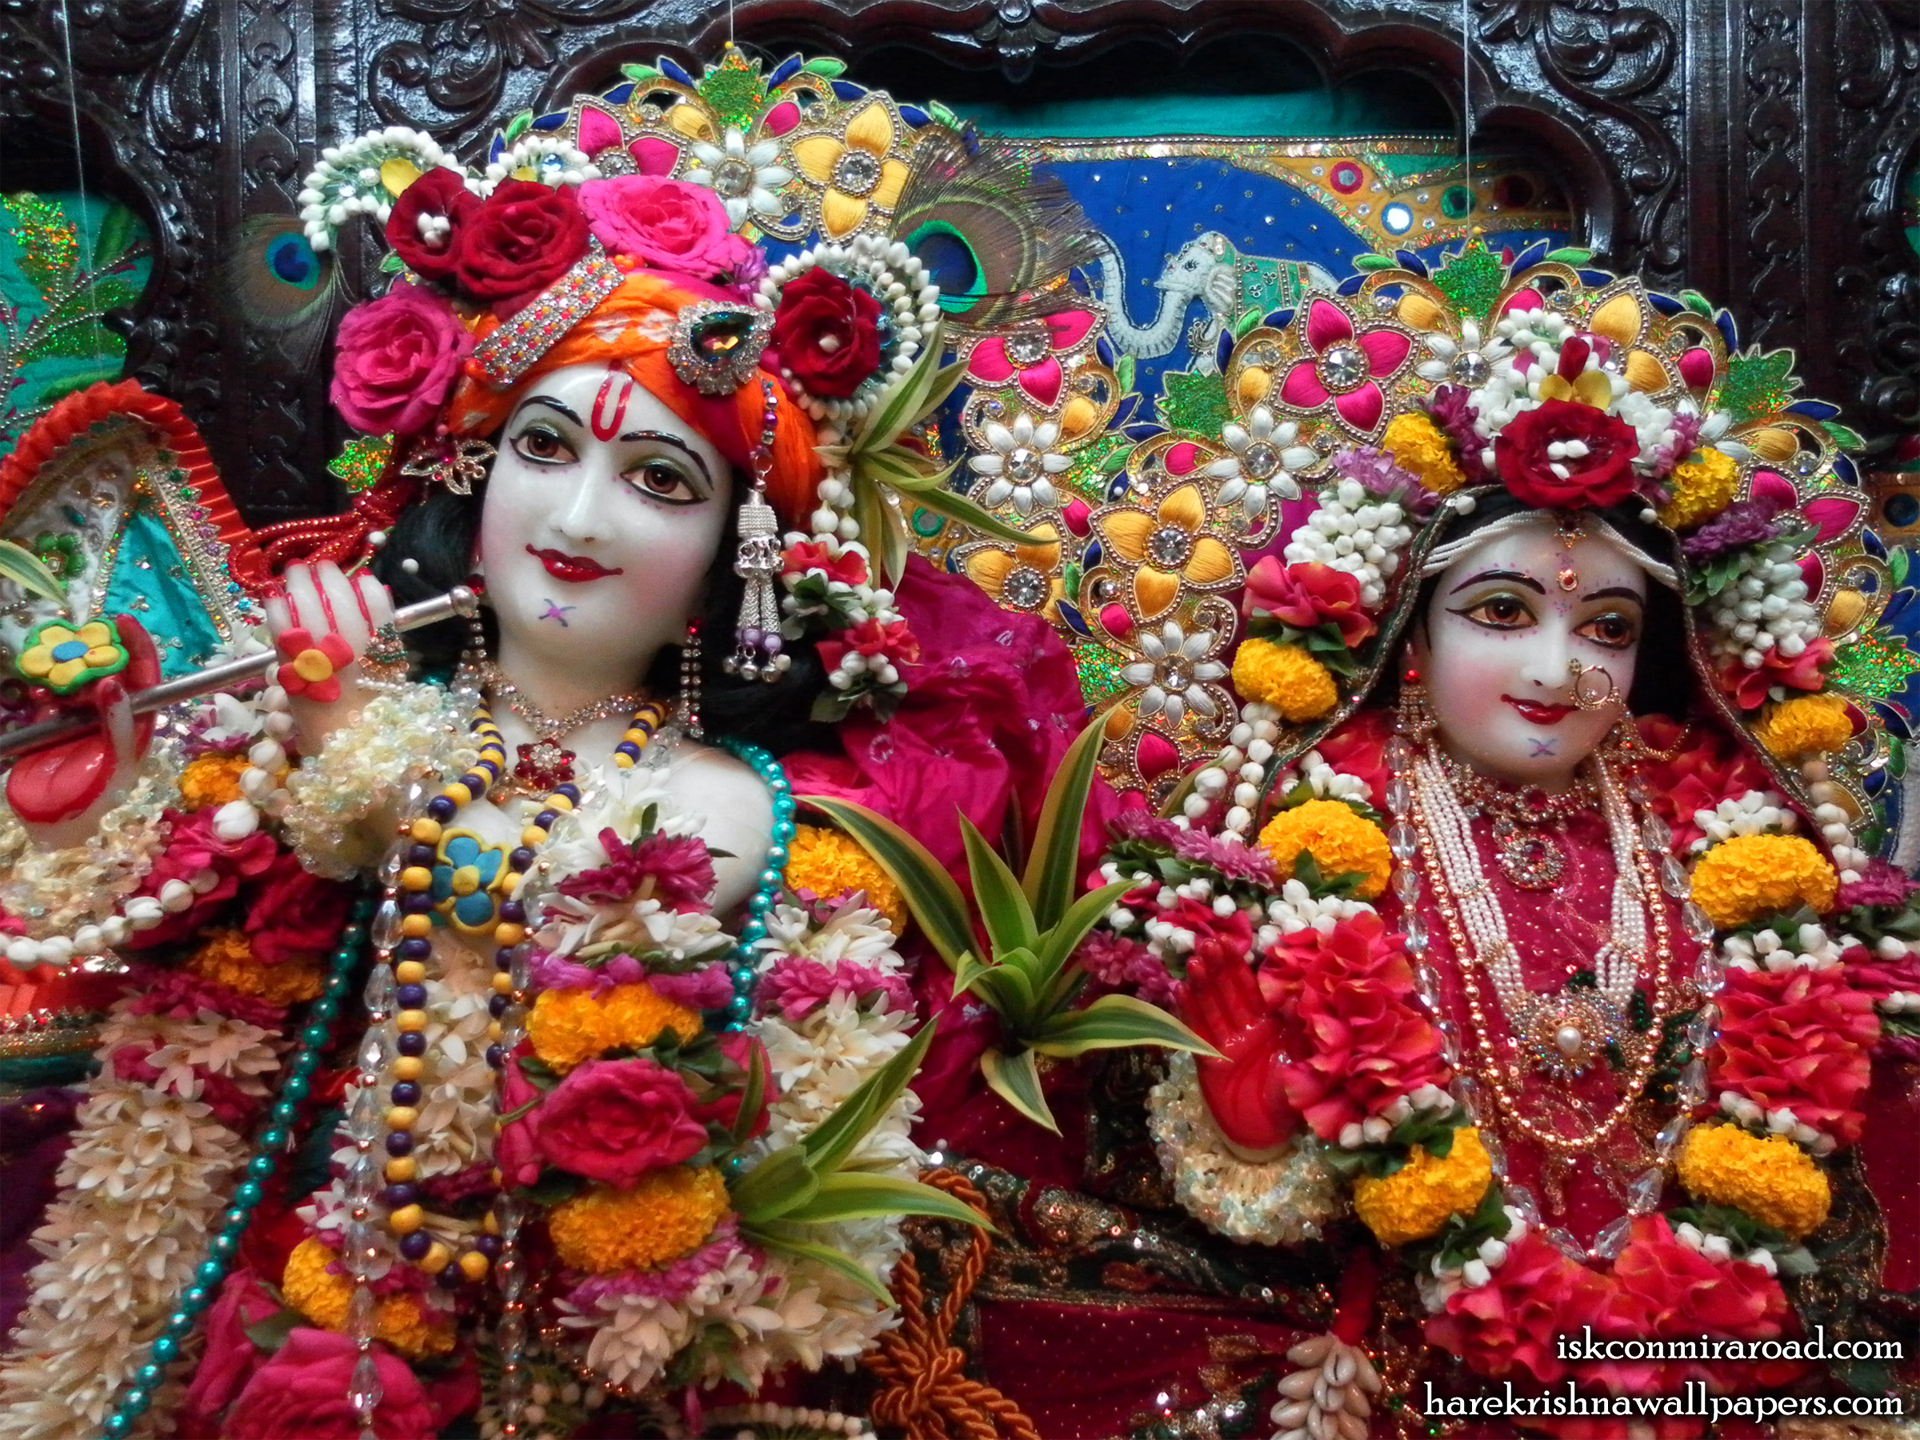 Sri Sri Radha Giridhari Close up Wallpaper (003) Size 1920x1440 Download